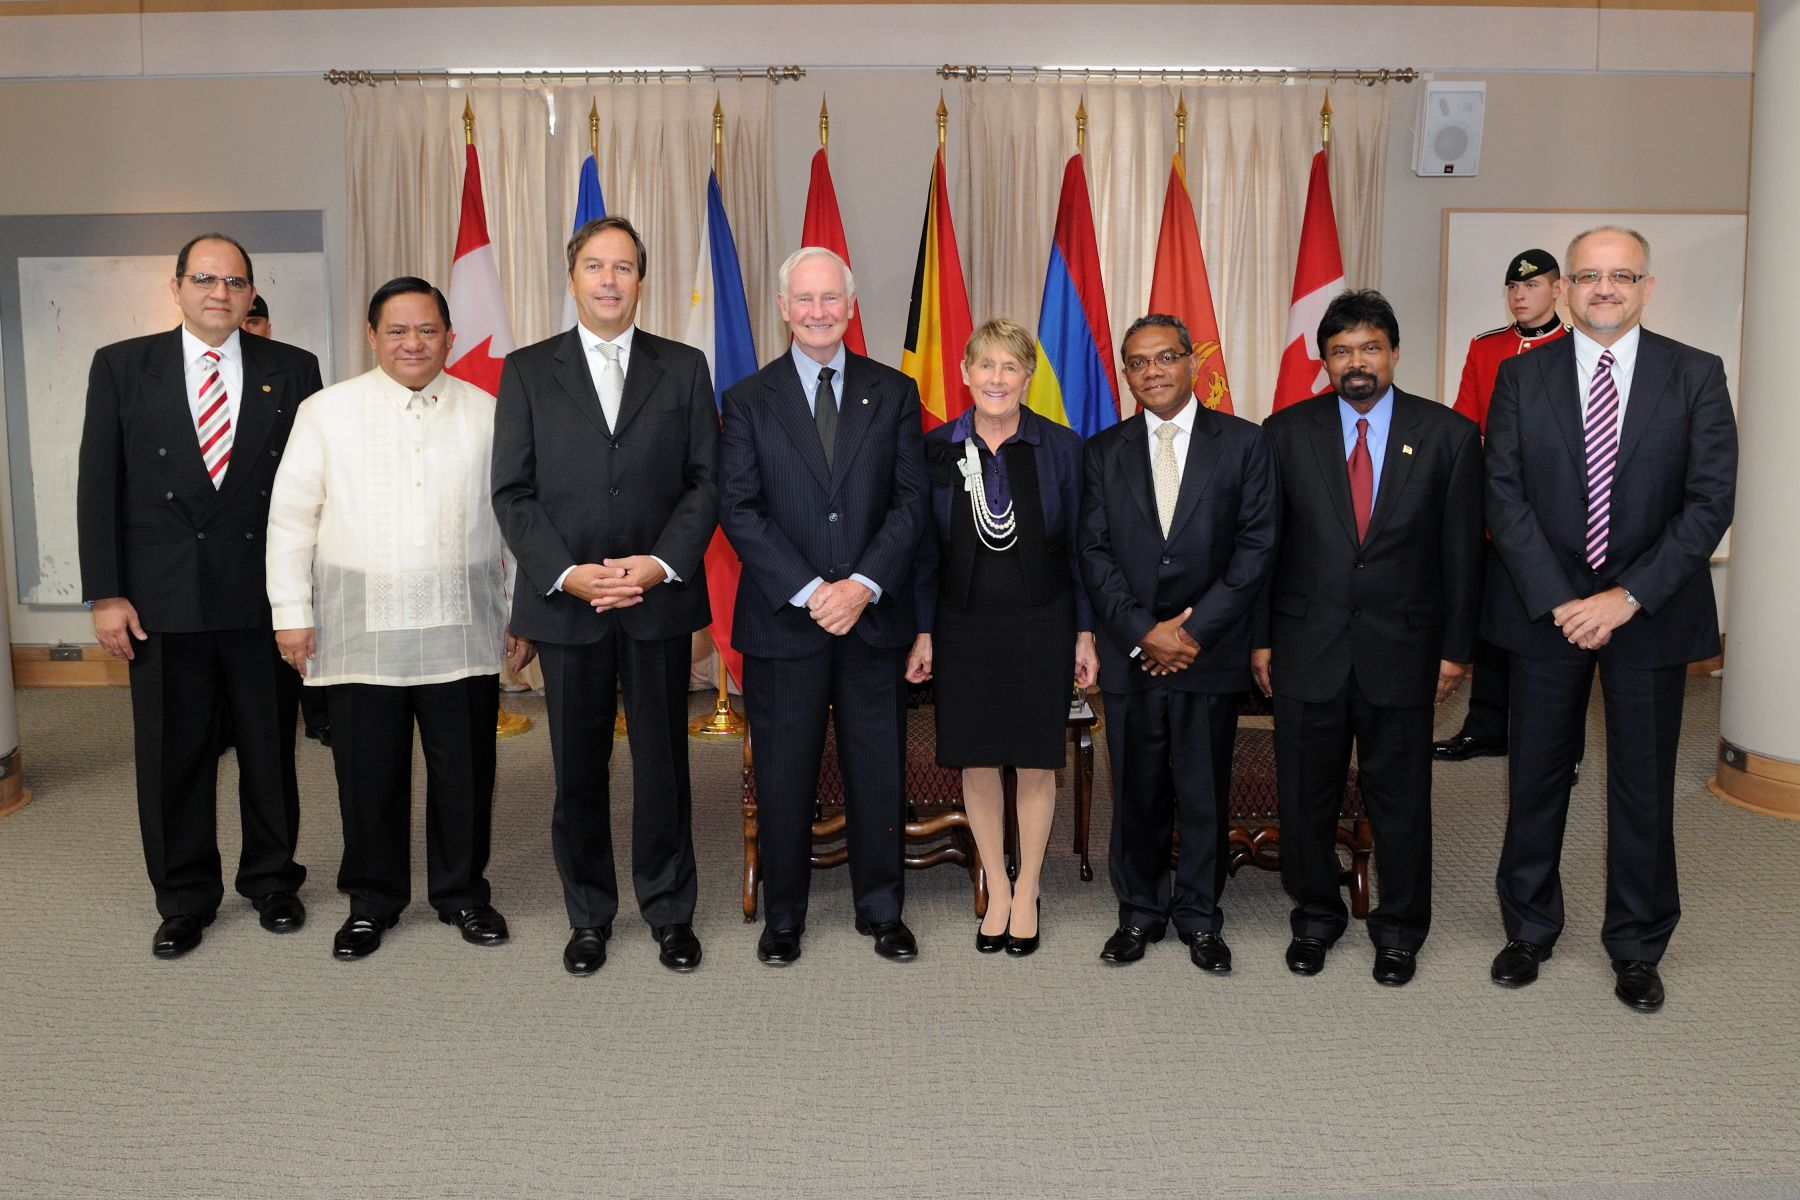 Representatives from El Salvador, Philippines, Swiss Confederation,